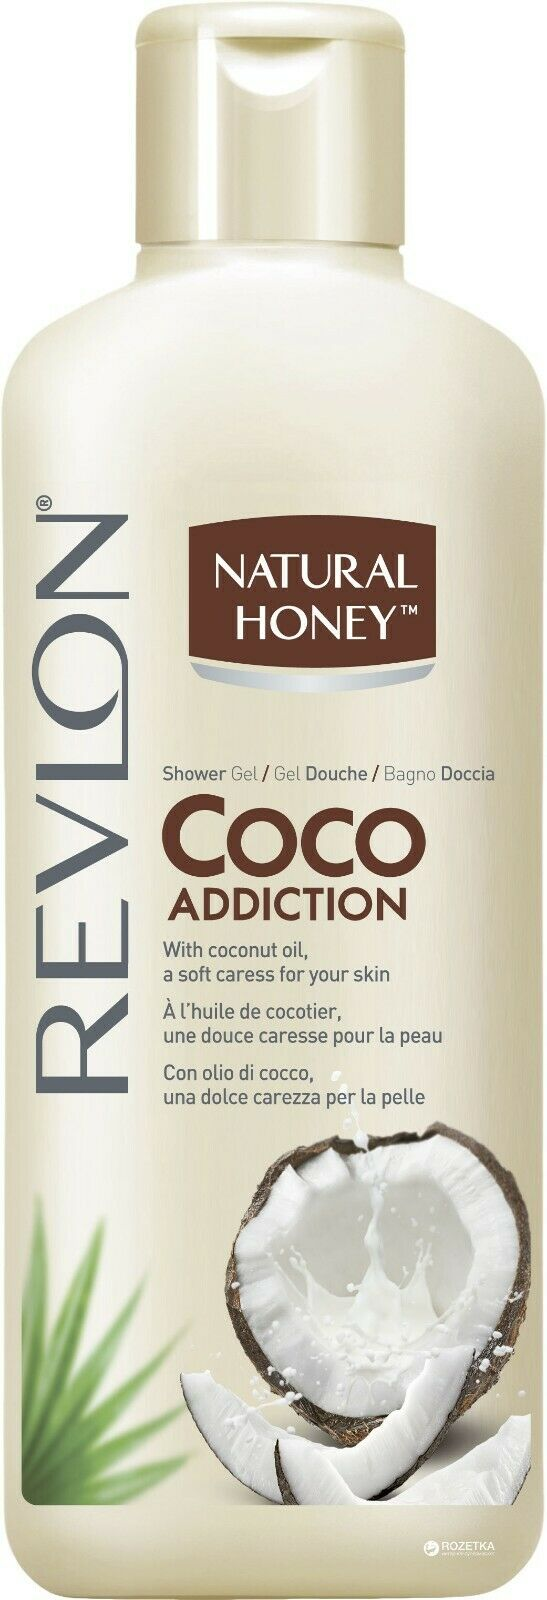 Revlon Natural Honey Coco Addition Shower Gel With Coconut Oil - 650ml